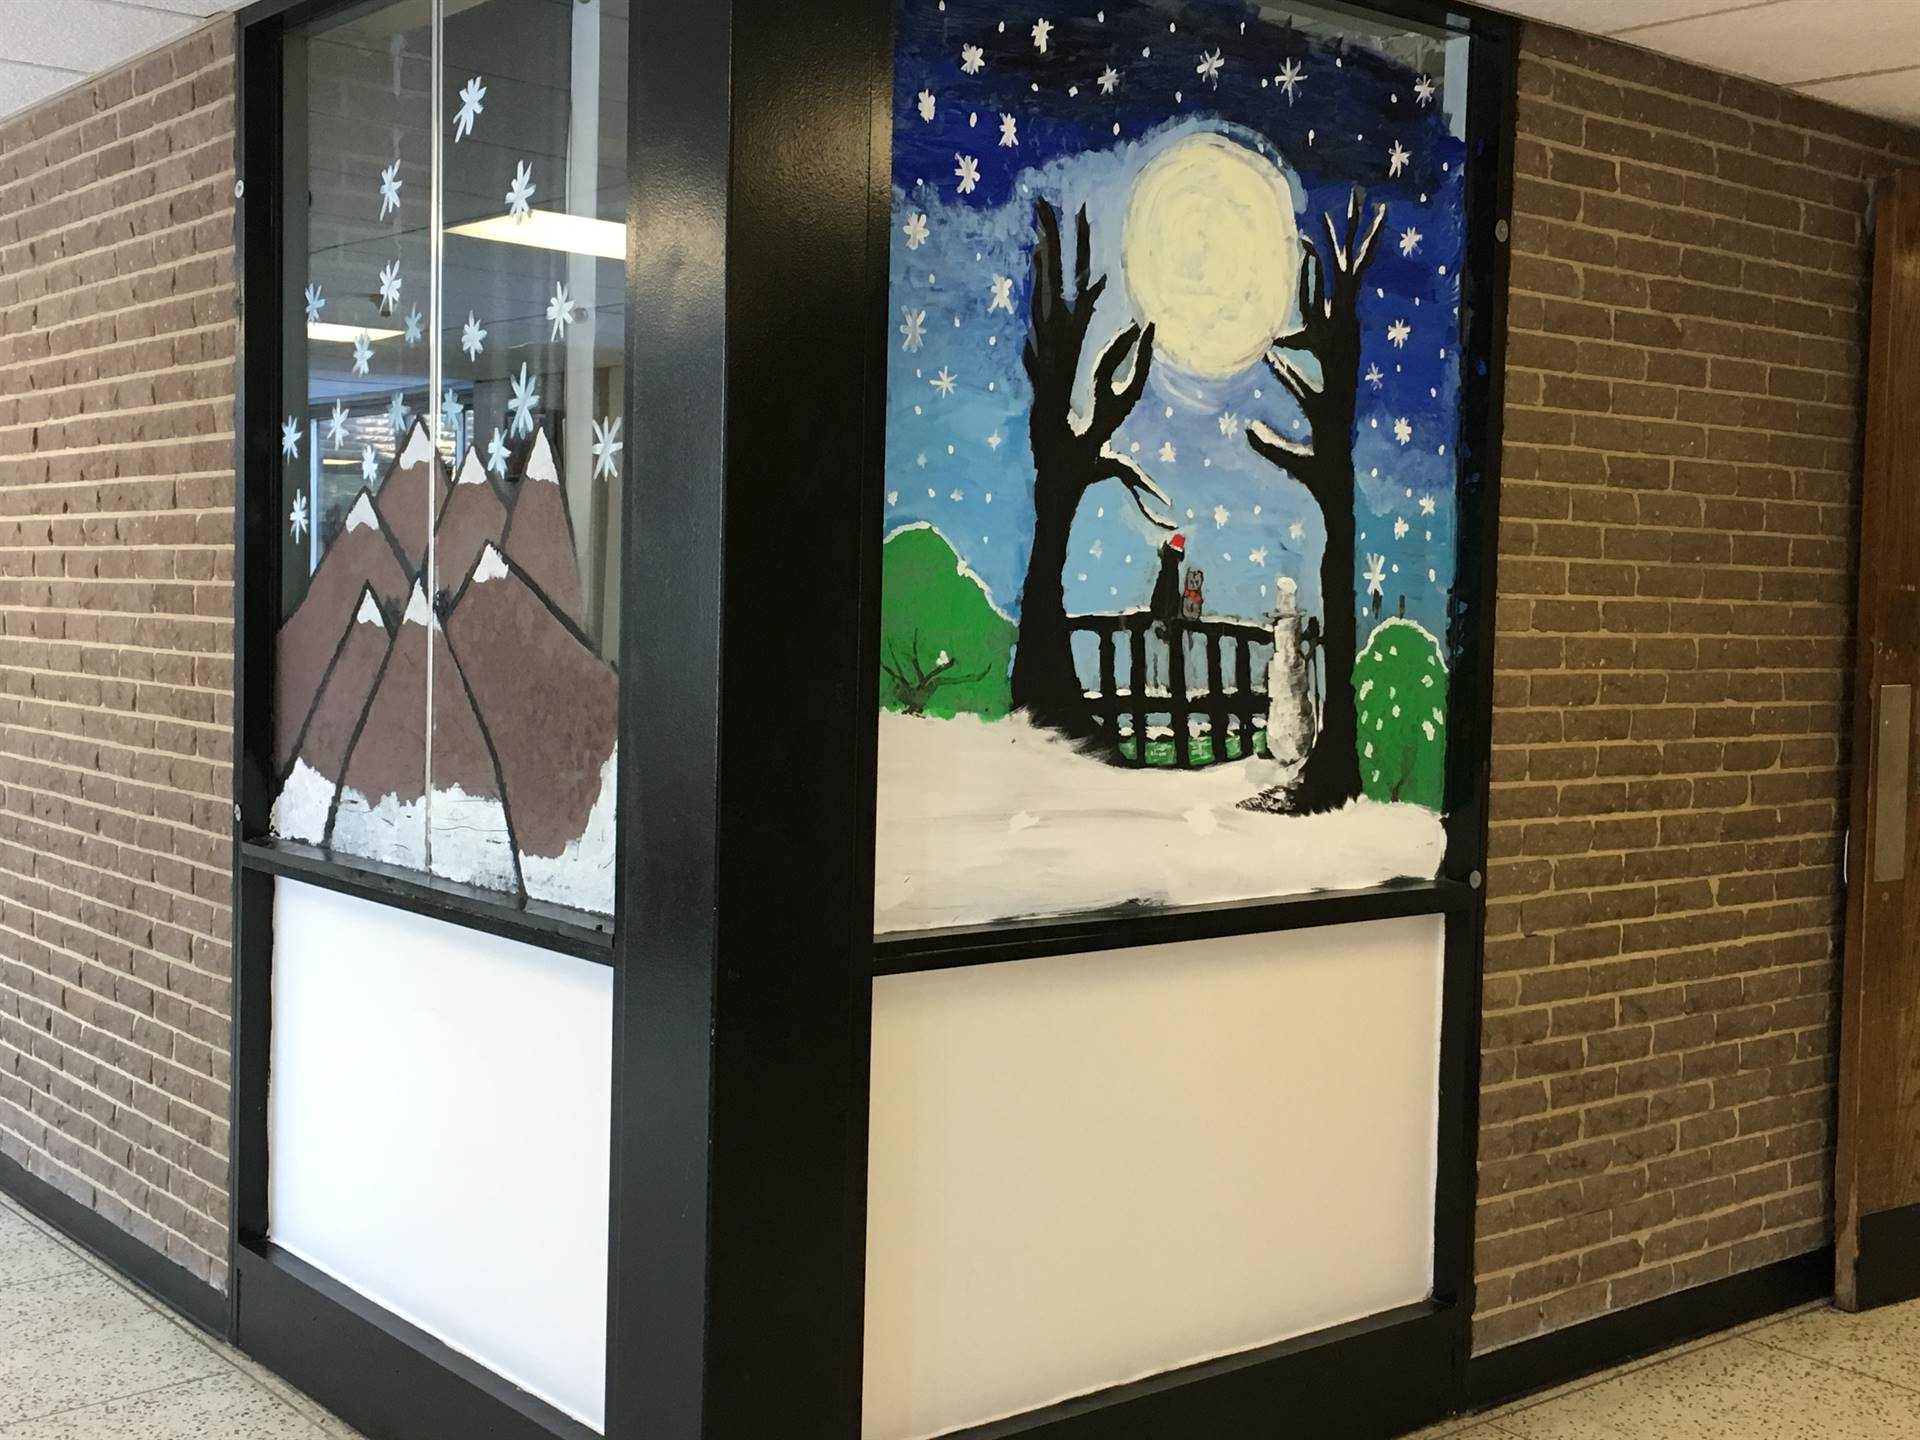 Window Art by Team 8-1 and 8-2